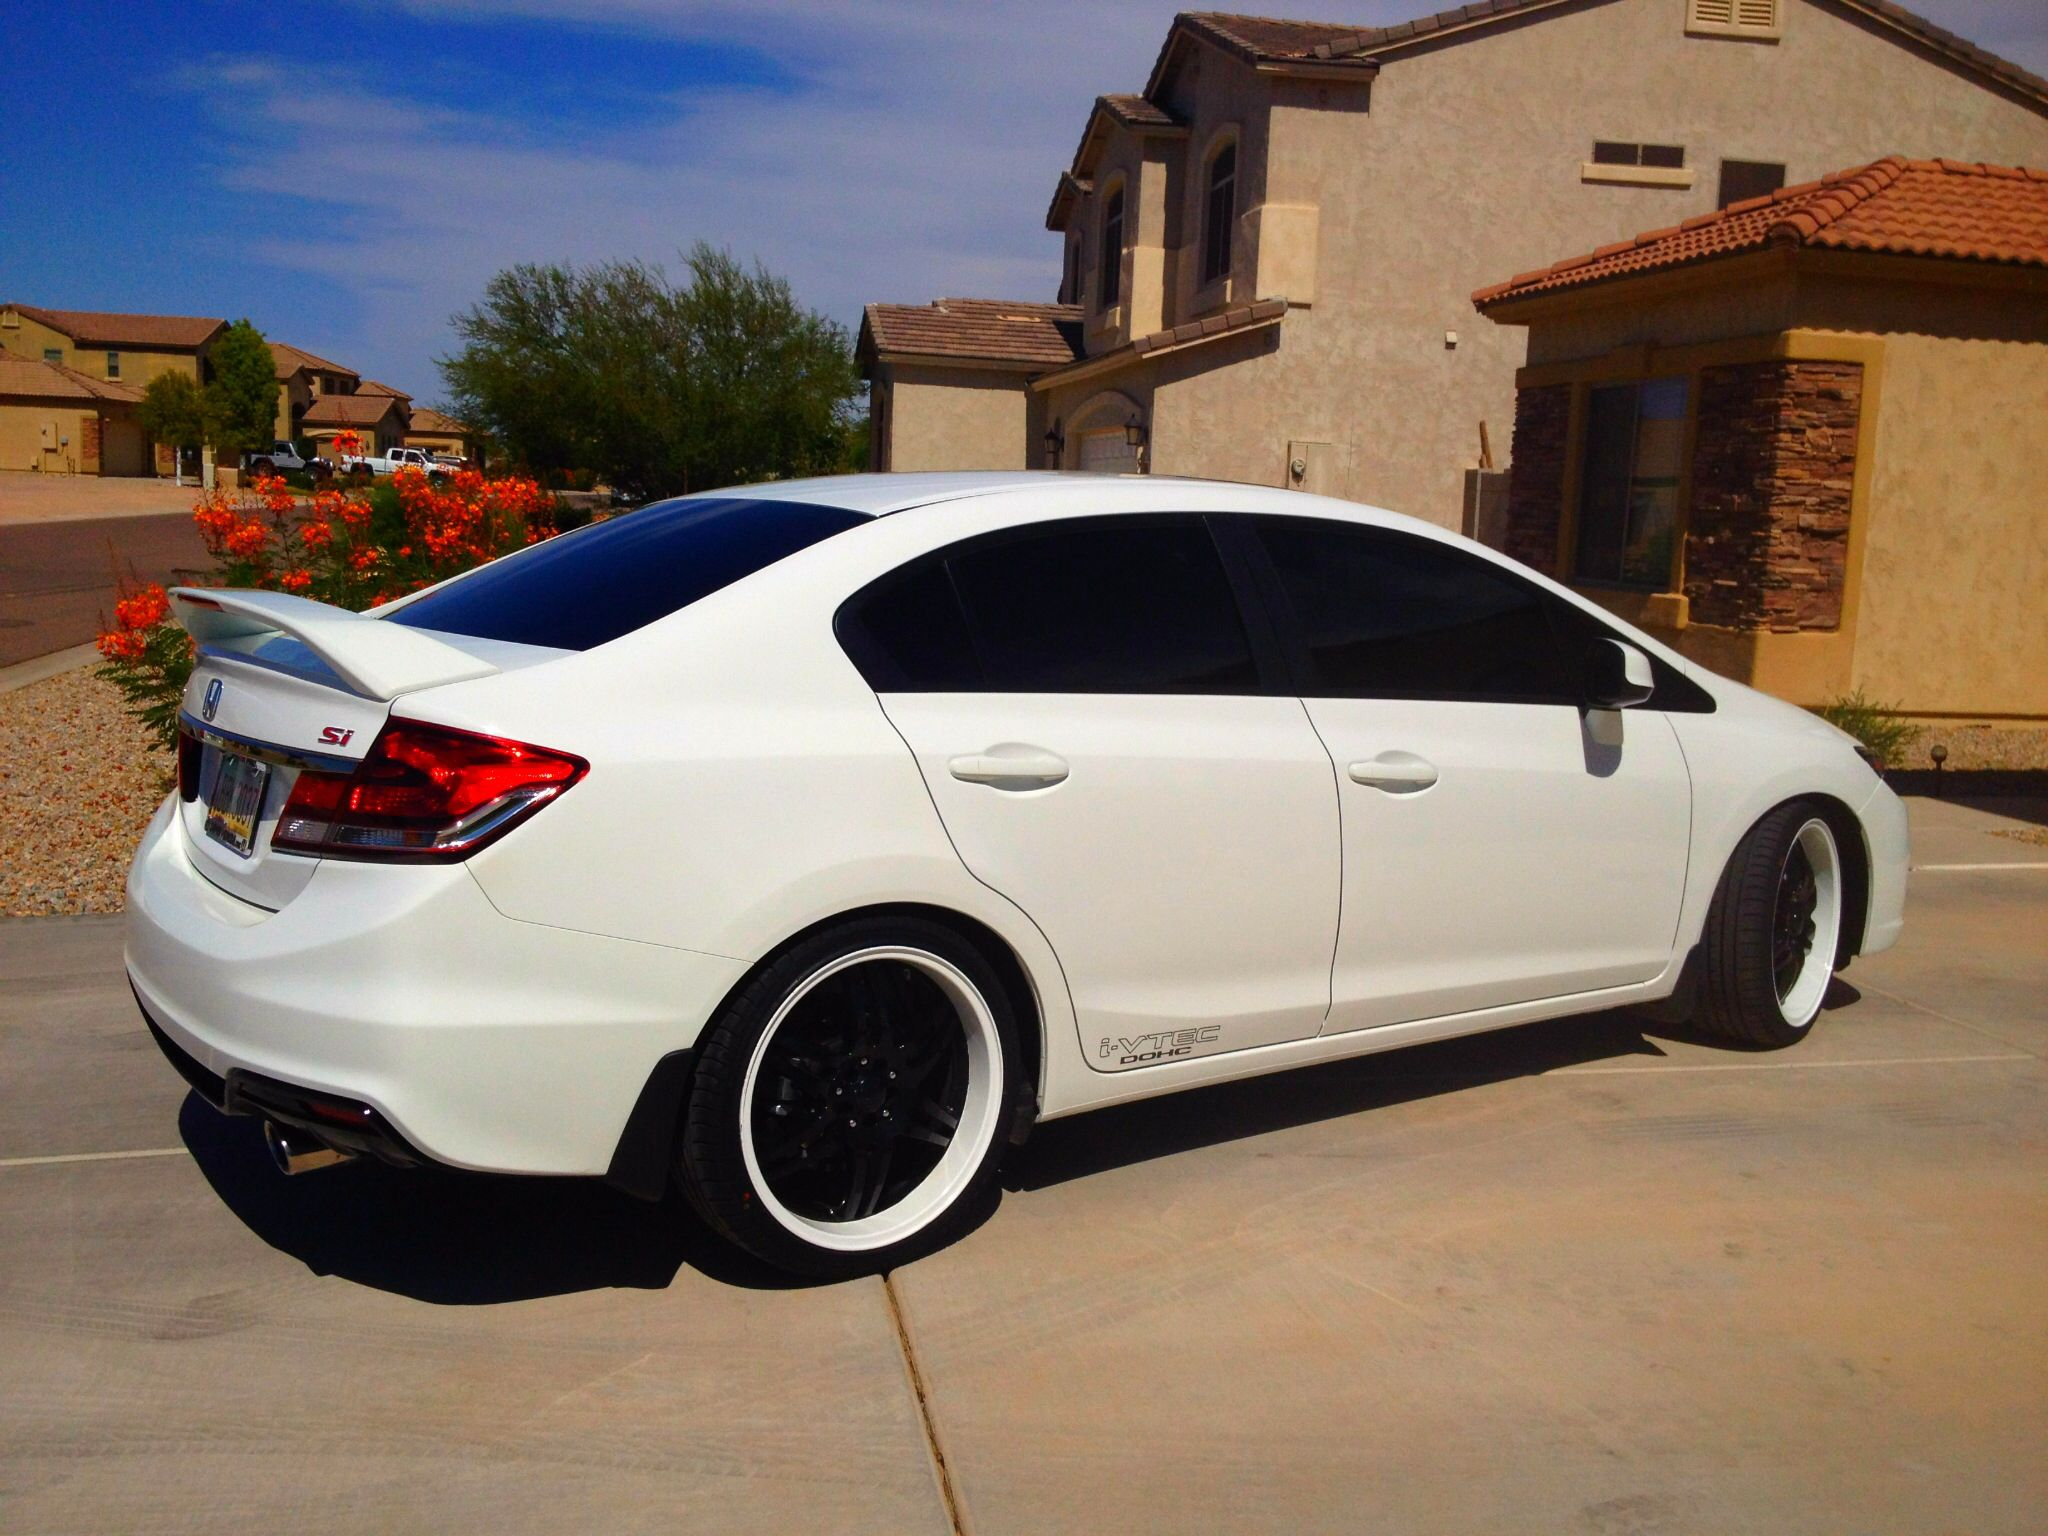 Best 25 honda civic 2013 ideas on pinterest honda civic rims 2013 civic and honda civic wheels